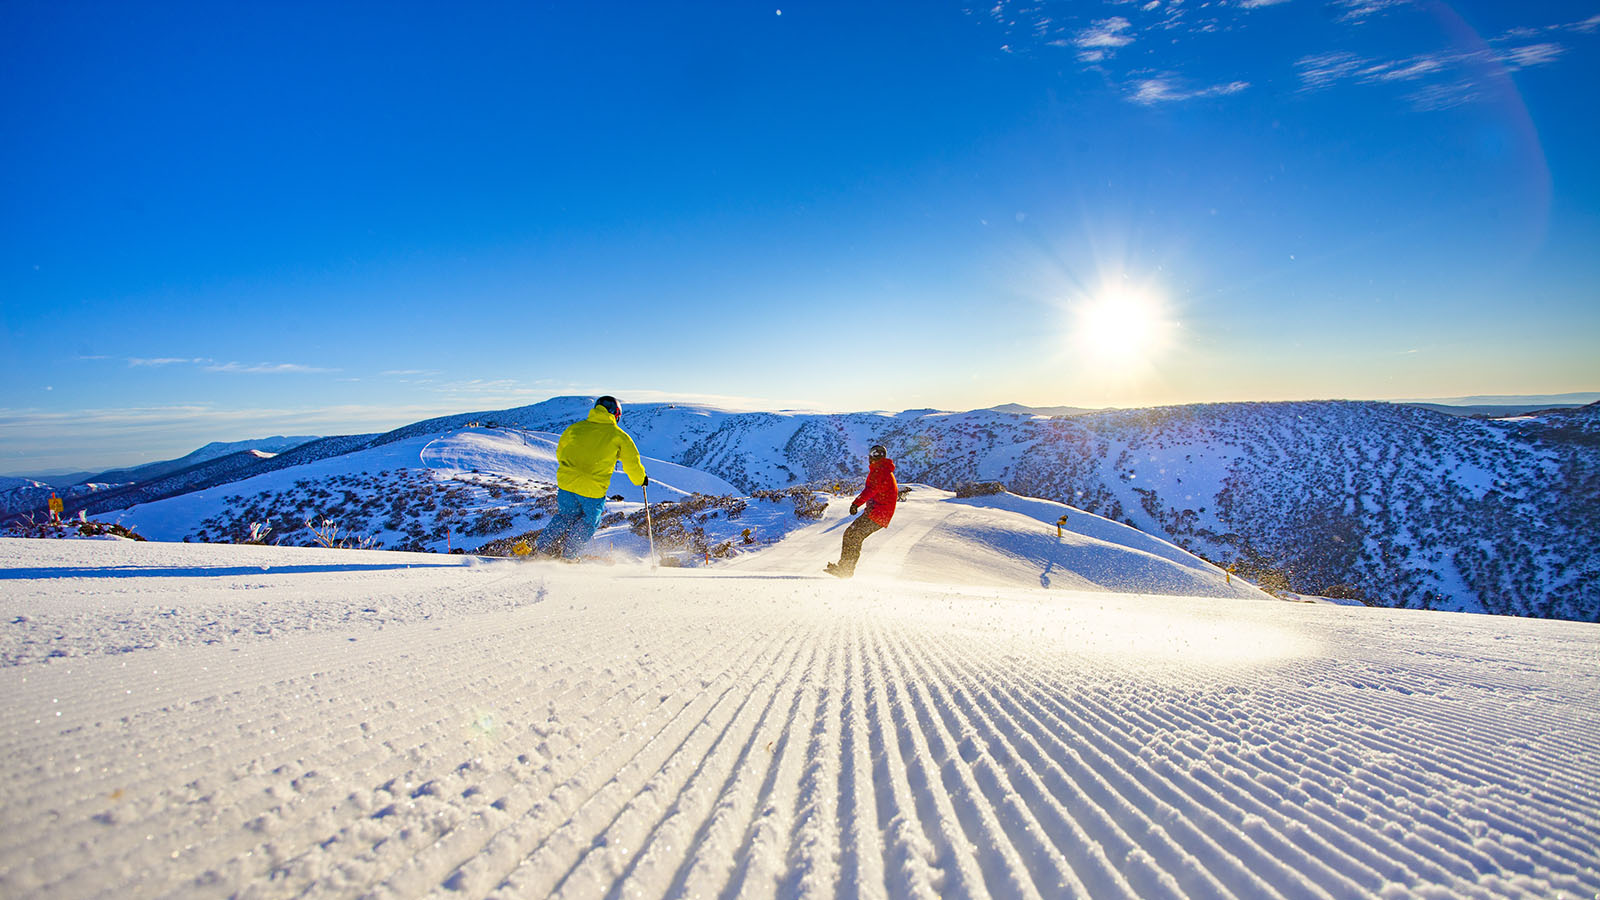 Mount Hotham, High Country, Victoria, Australia